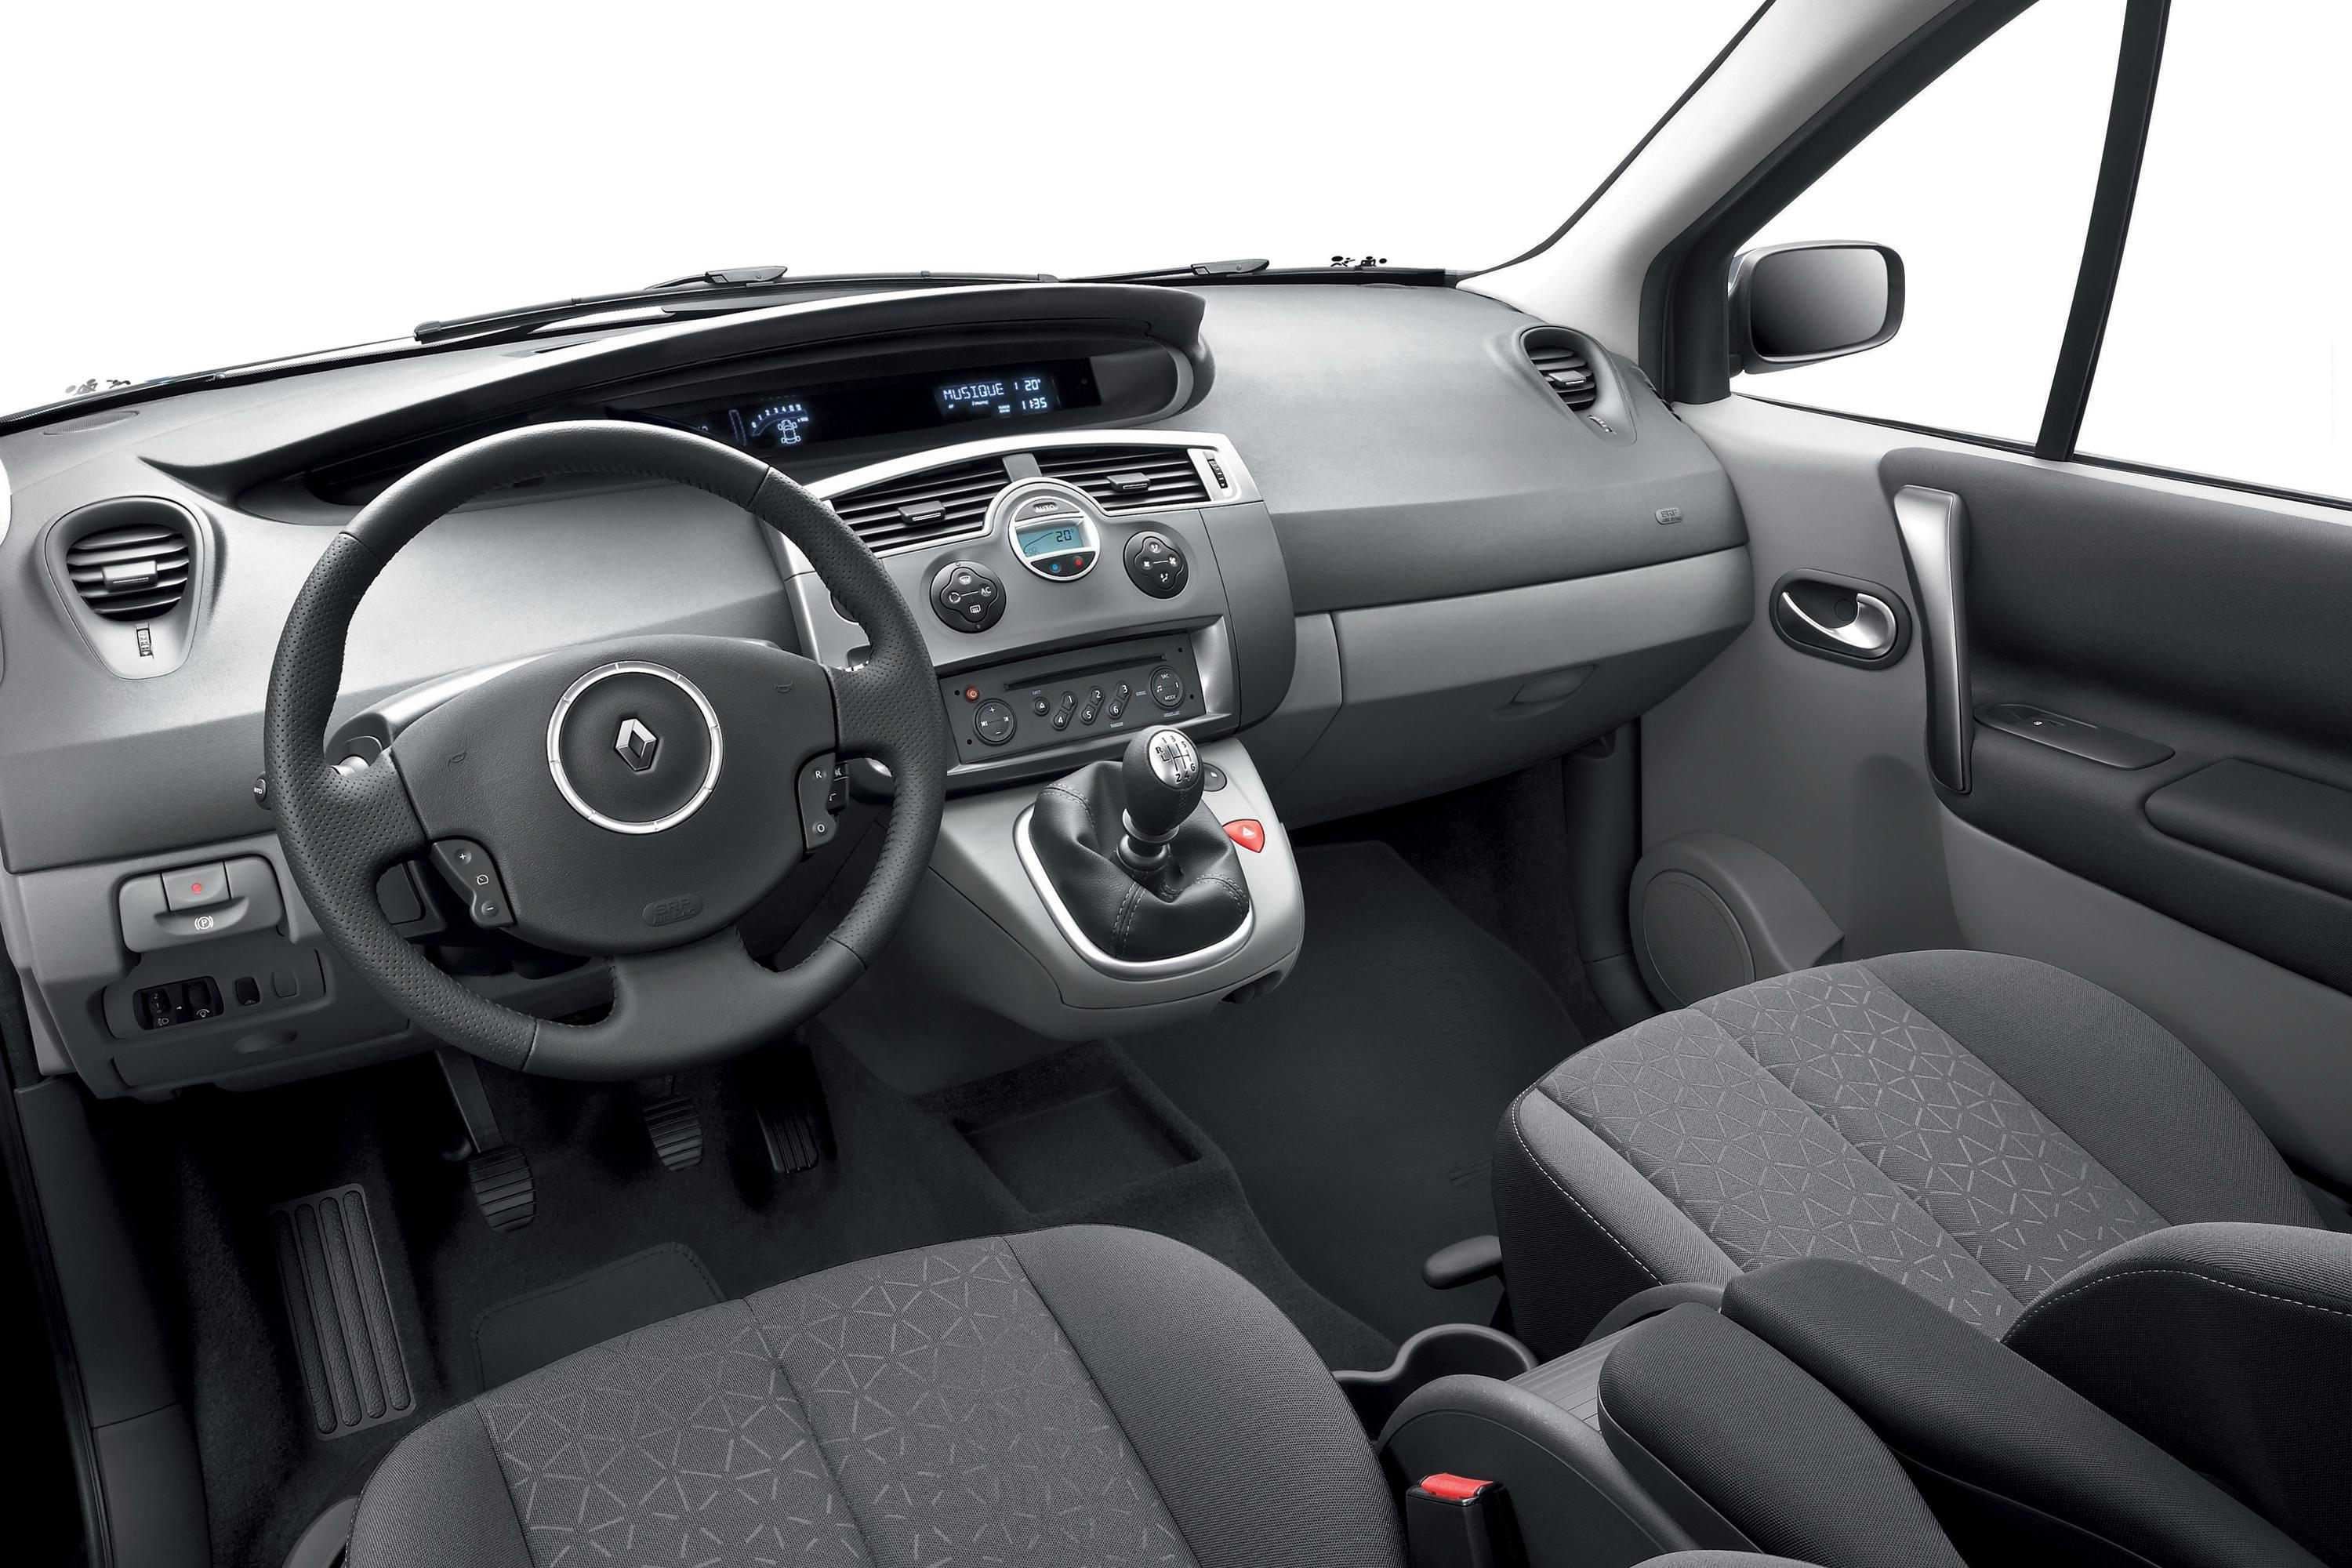 2008 Renault Scenic | Top Speed